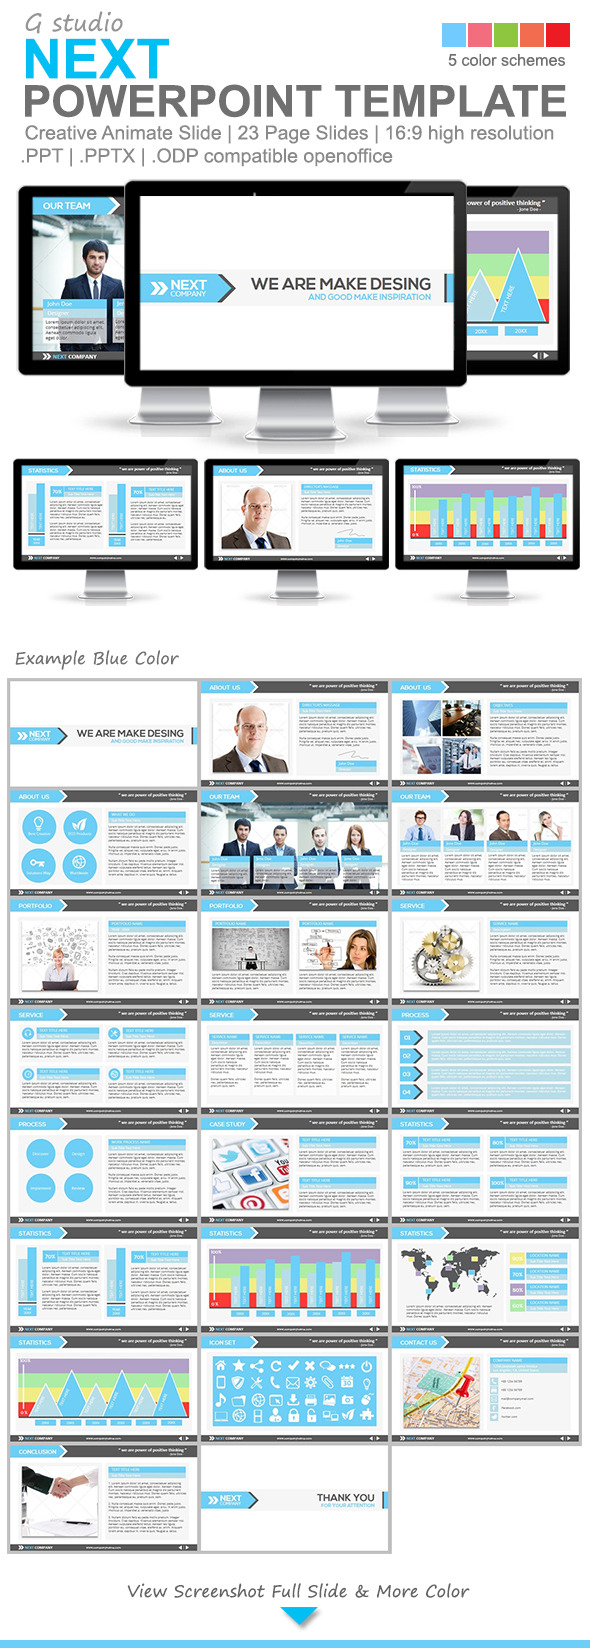 Gstudio Next Powerpoint Template - Business PowerPoint Templates